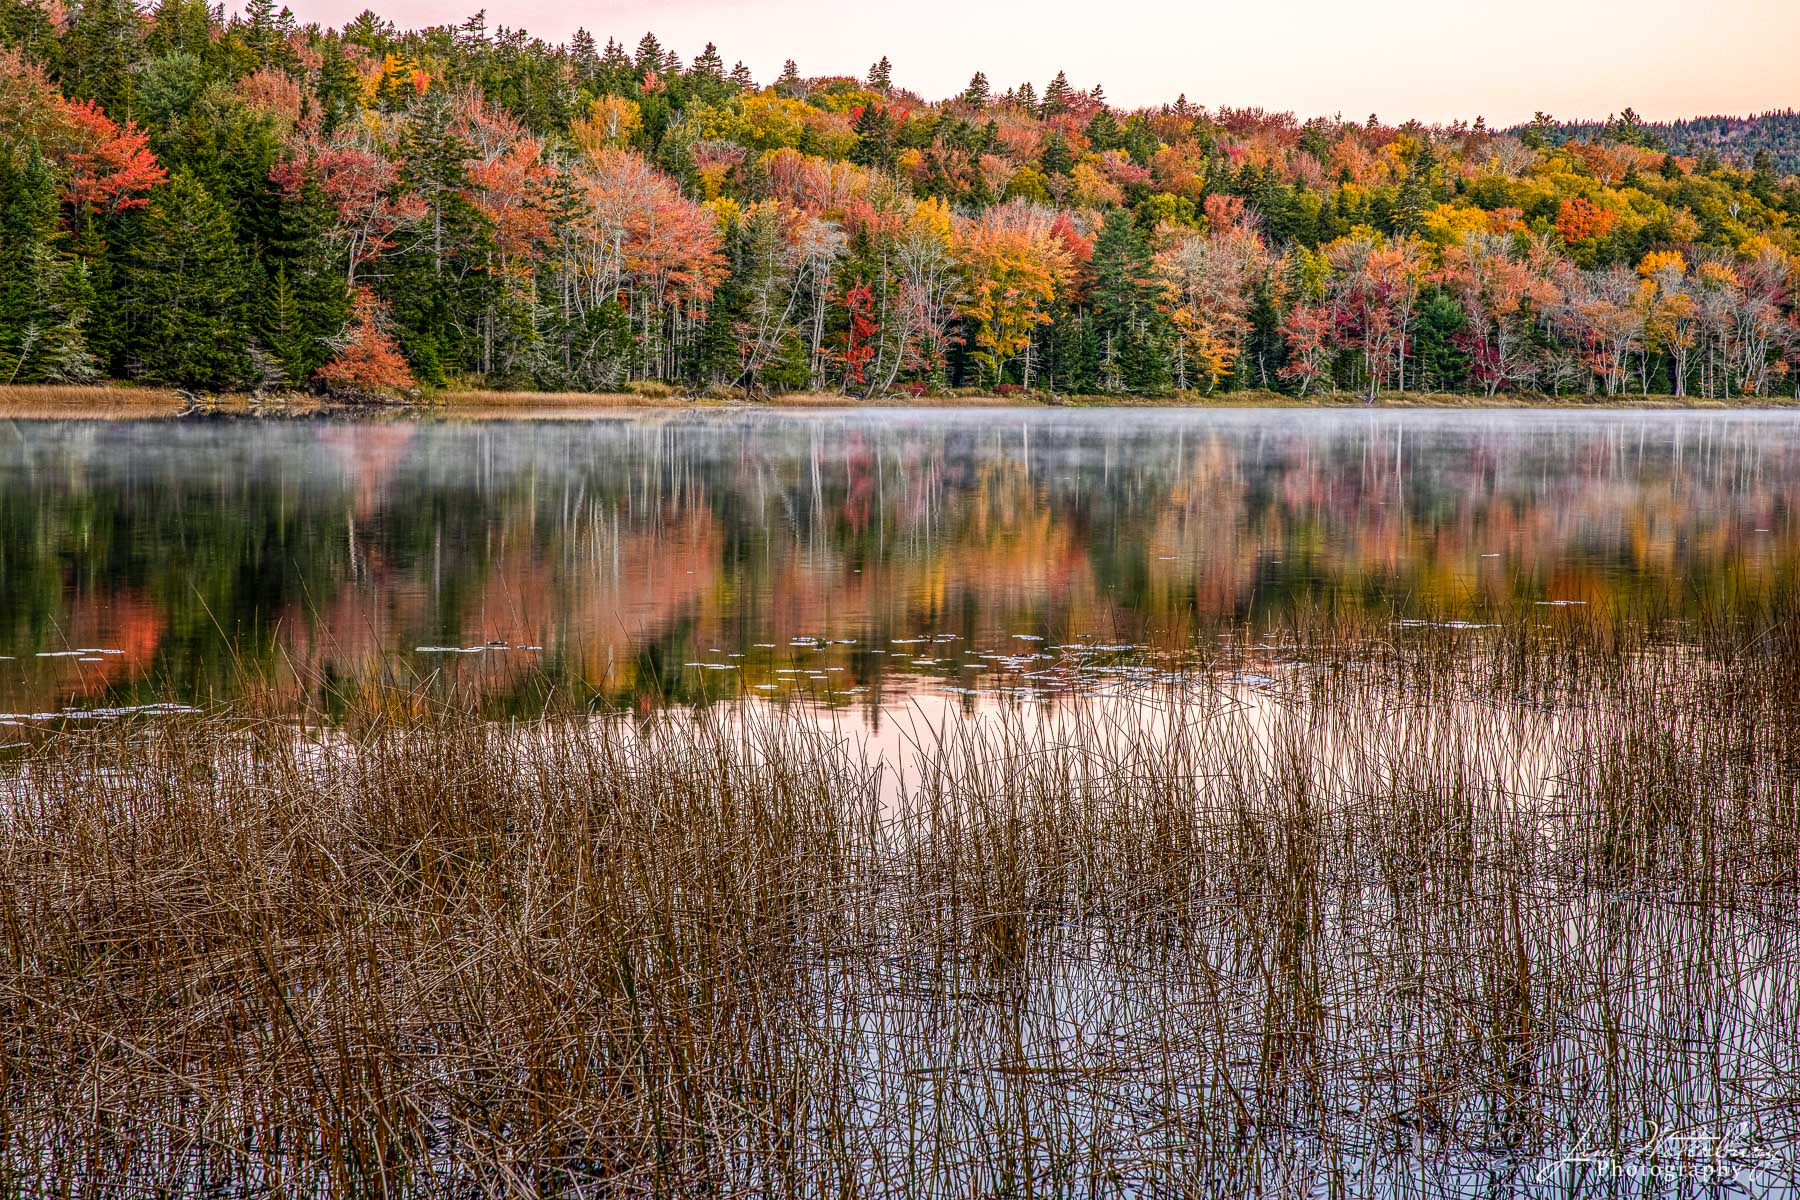 A still pre-dawn scene on Little Long Pond showcases the brilliant colors of fall, and their reflection in the dark waters of...